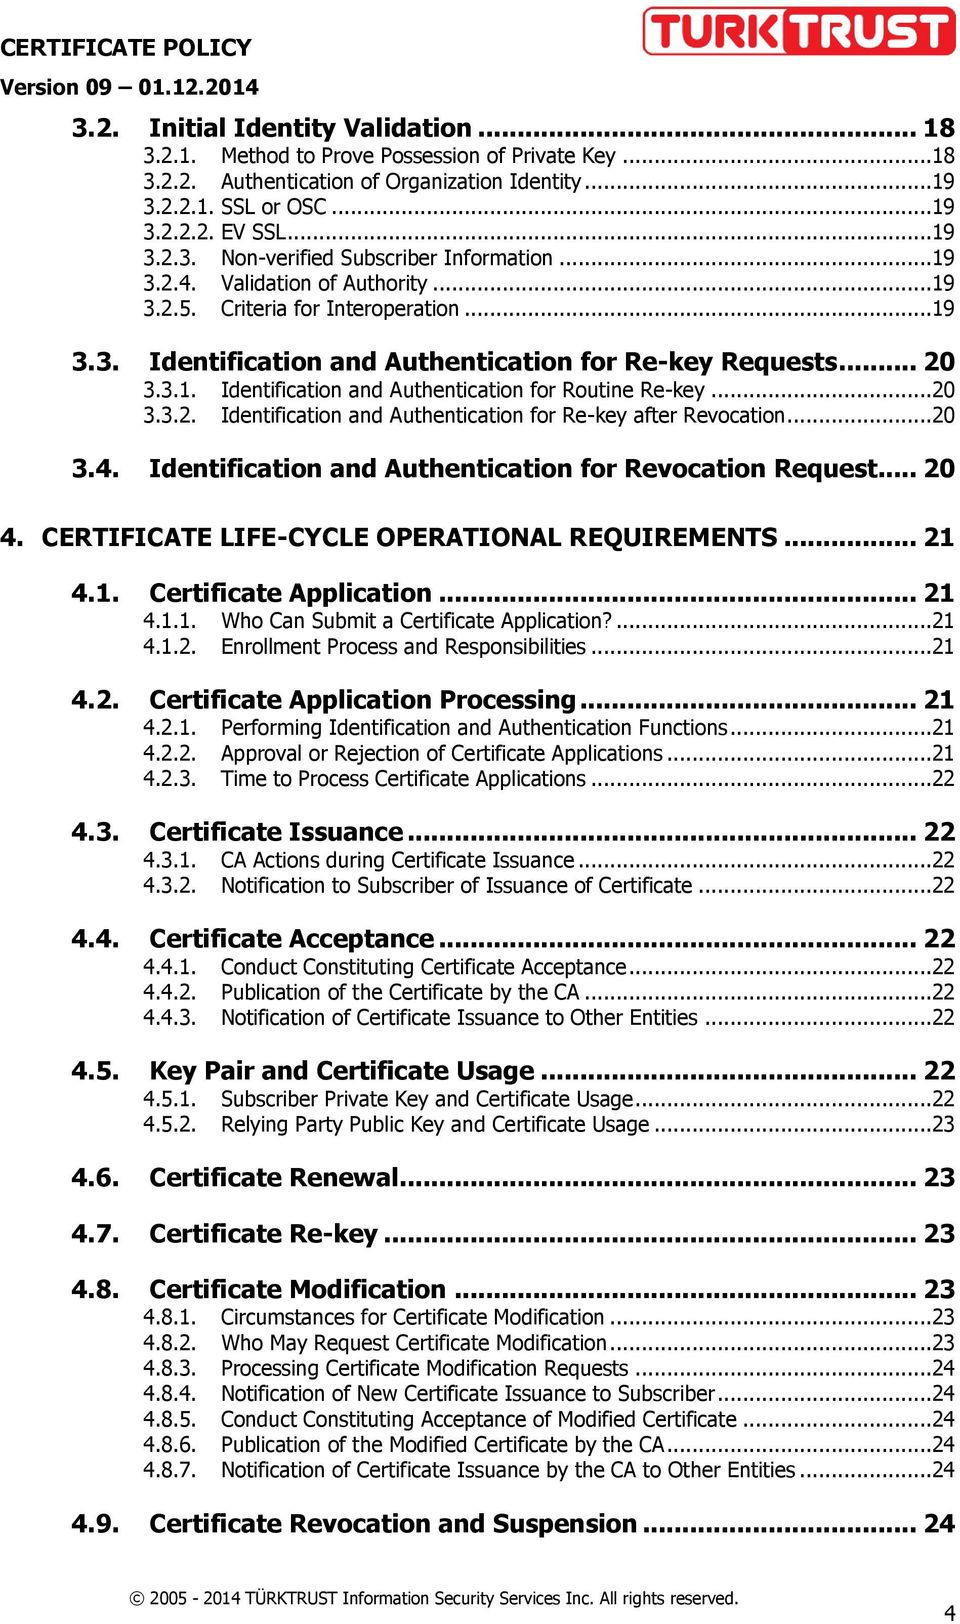 ..20 3.3.2. Identification and Authentication for Re-key after Revocation...20 3.4. Identification and Authentication for Revocation Request... 20 4. CERTIFICATE LIFE-CYCLE OPERATIONAL REQUIREMENTS.